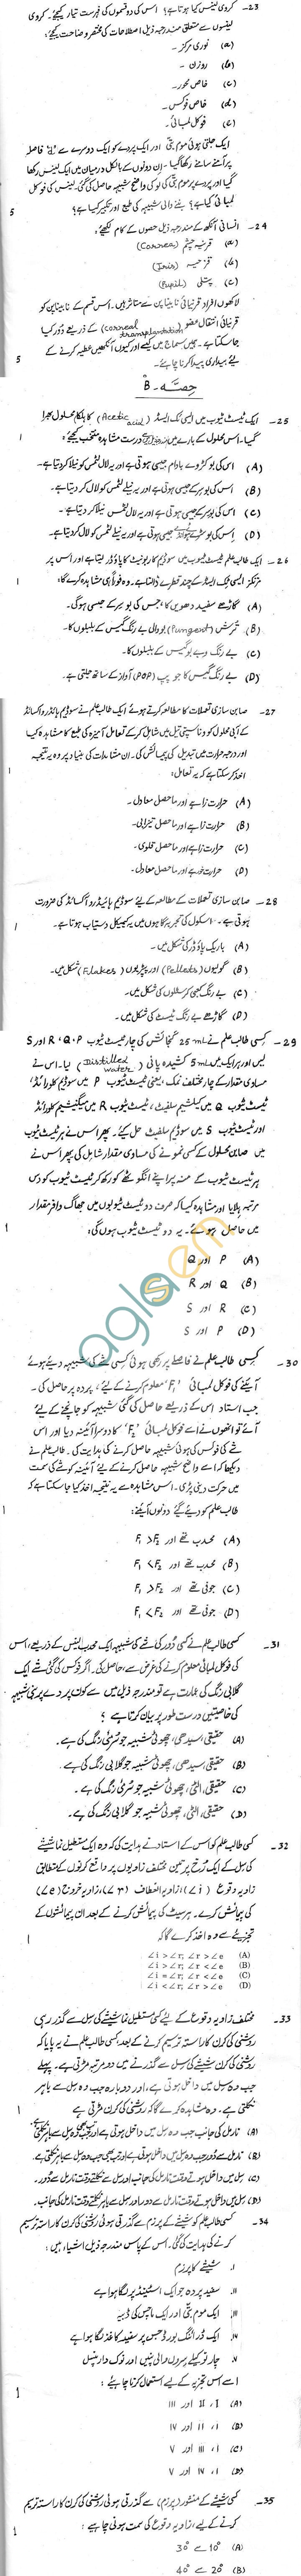 CBSE Compartment Exam 2013 Class X Question Paper -Science for Blind Candidates